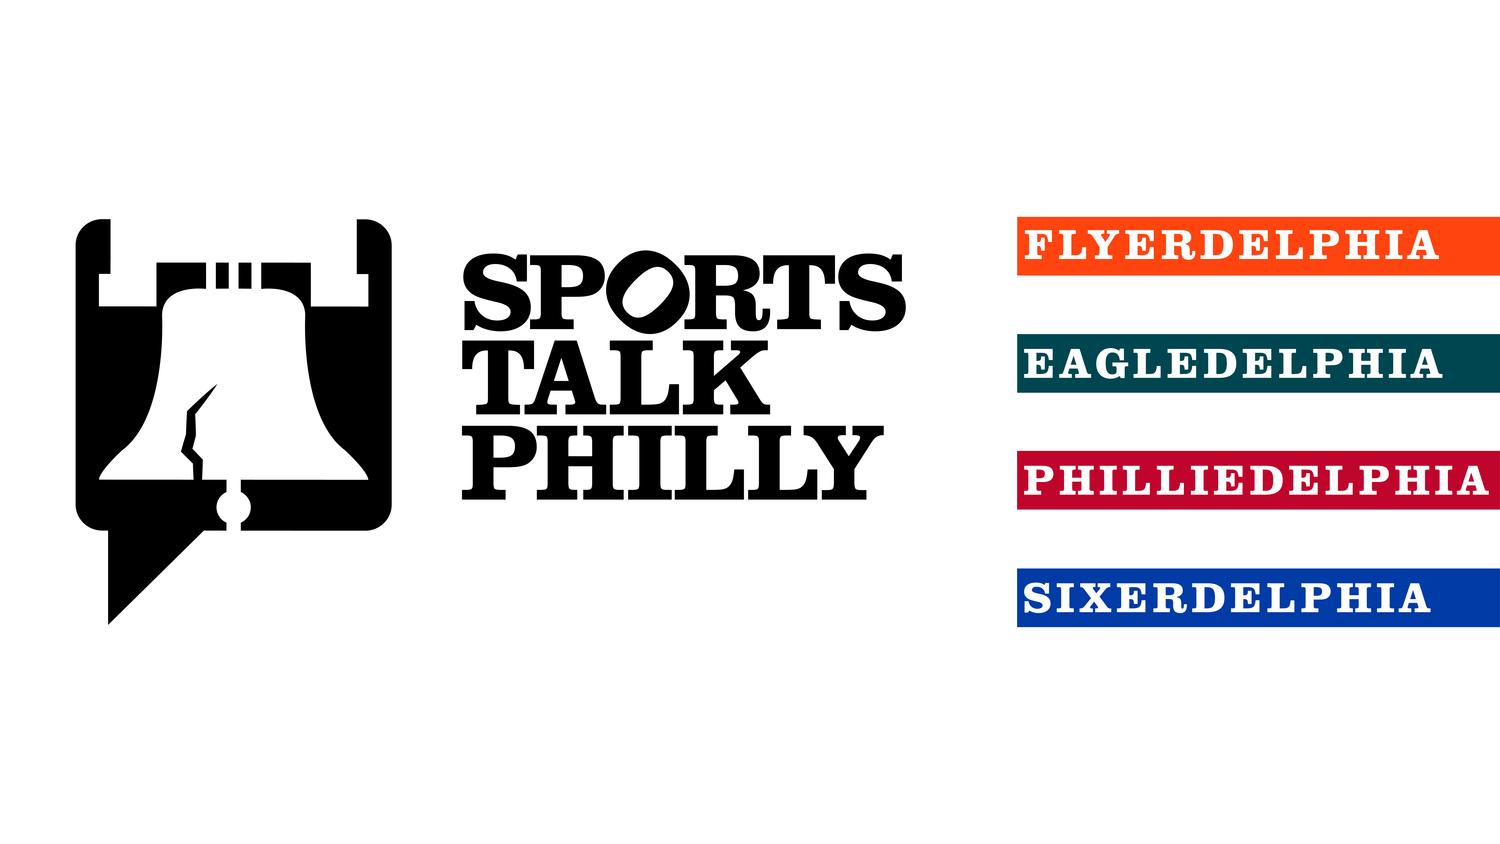 """The Sports Talk Philly logo includes the liberty bell inside of a speech bubble. The text has an angled """"O"""" referring to the iconic """"Love"""" statue in downtown Philadelphia."""